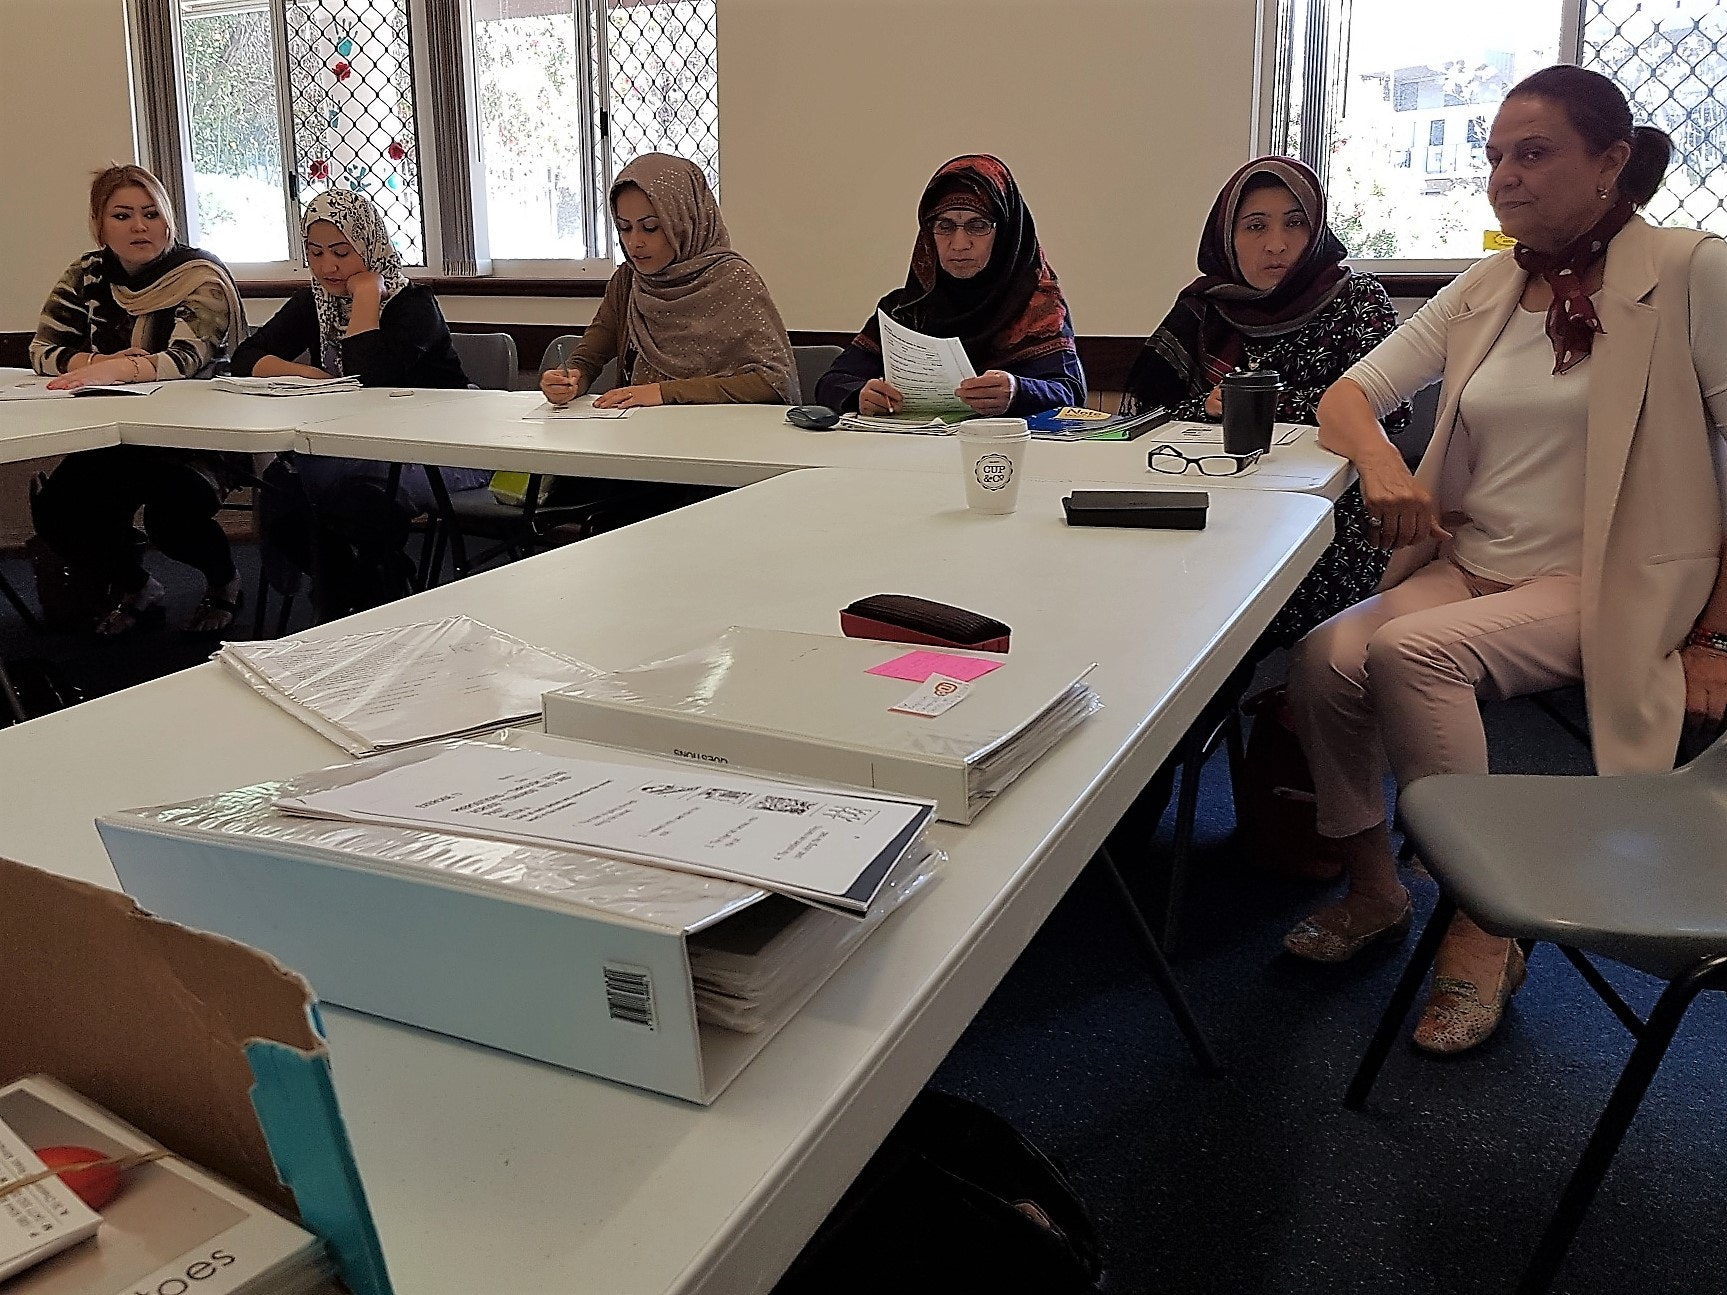 Group of Afghanistan Women attending the English Conversation Classes at Sudbury House. Their teacher on the right is Hadia Masud who speaks five languages.